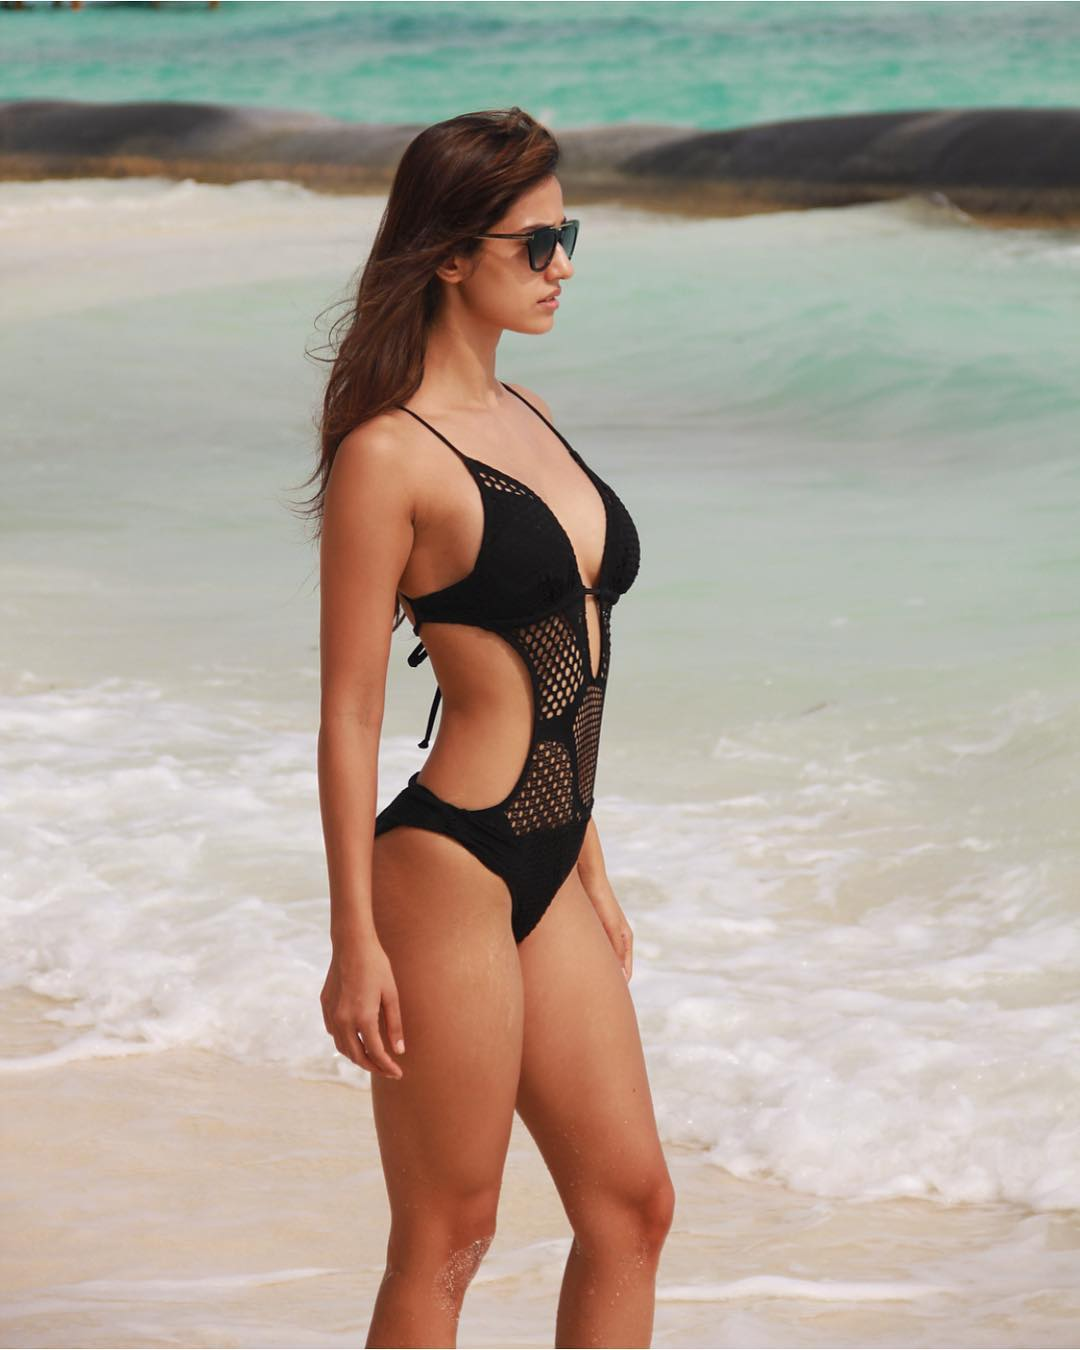 Disha Patani Sexy Boobs Pics on Black Swimming Costume